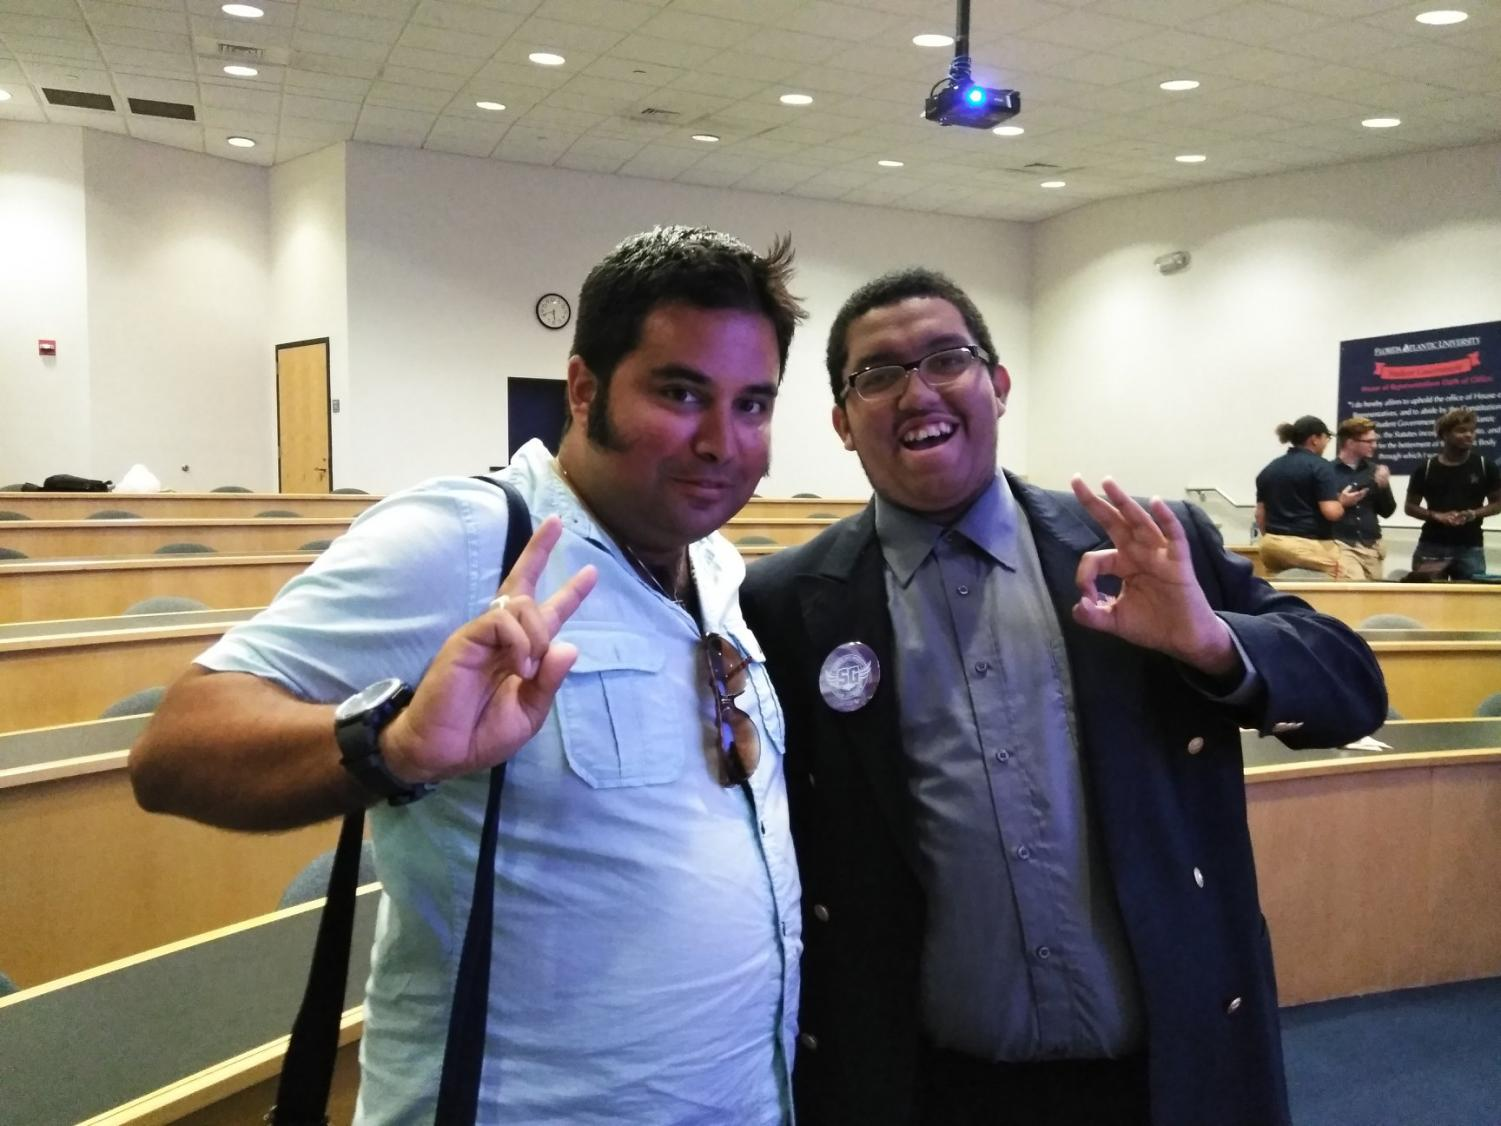 Alexander Suarez (left) and Michaelangelo Hamilton (right) pose after their first House meeting last year. The original petition was to remove both of them from office, but the new Articles of Impeachment are against Suarez only. Photo courtesy of Hamilton's Facebook